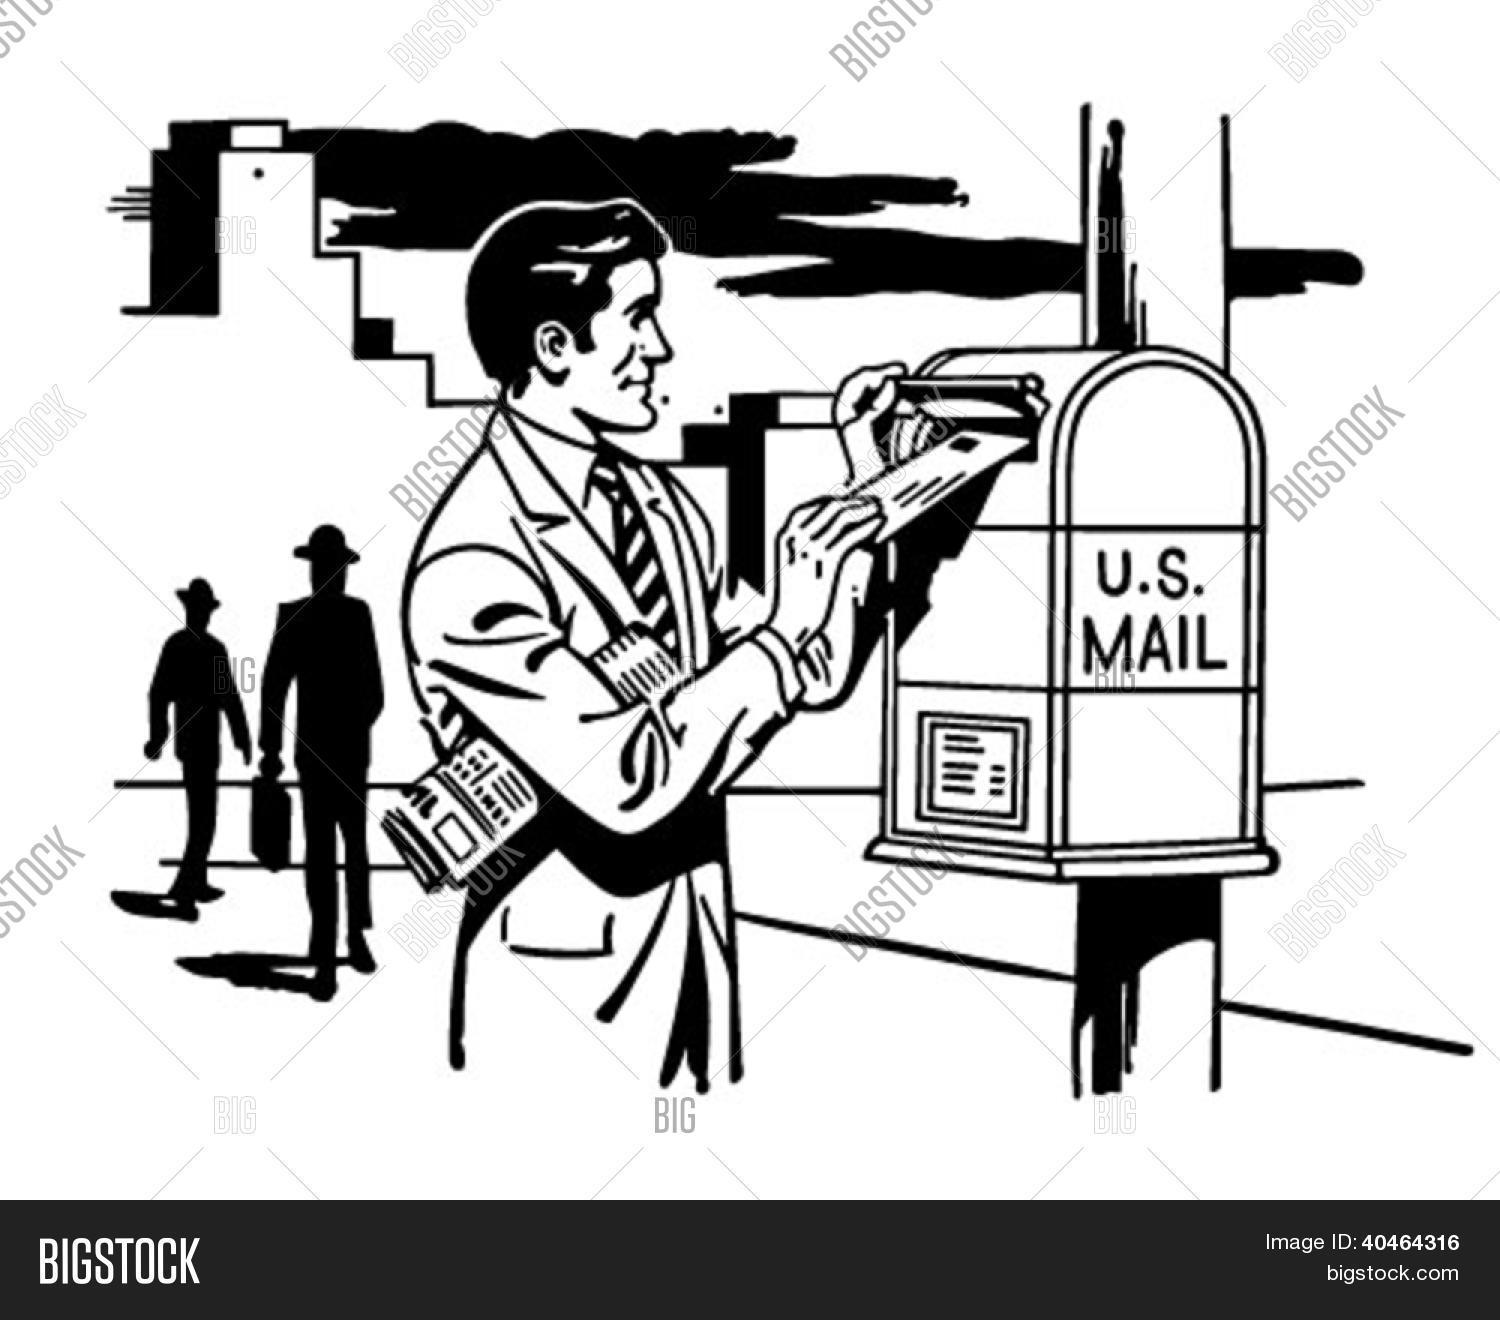 man mailing letter - vector & photo (free trial) | bigstock